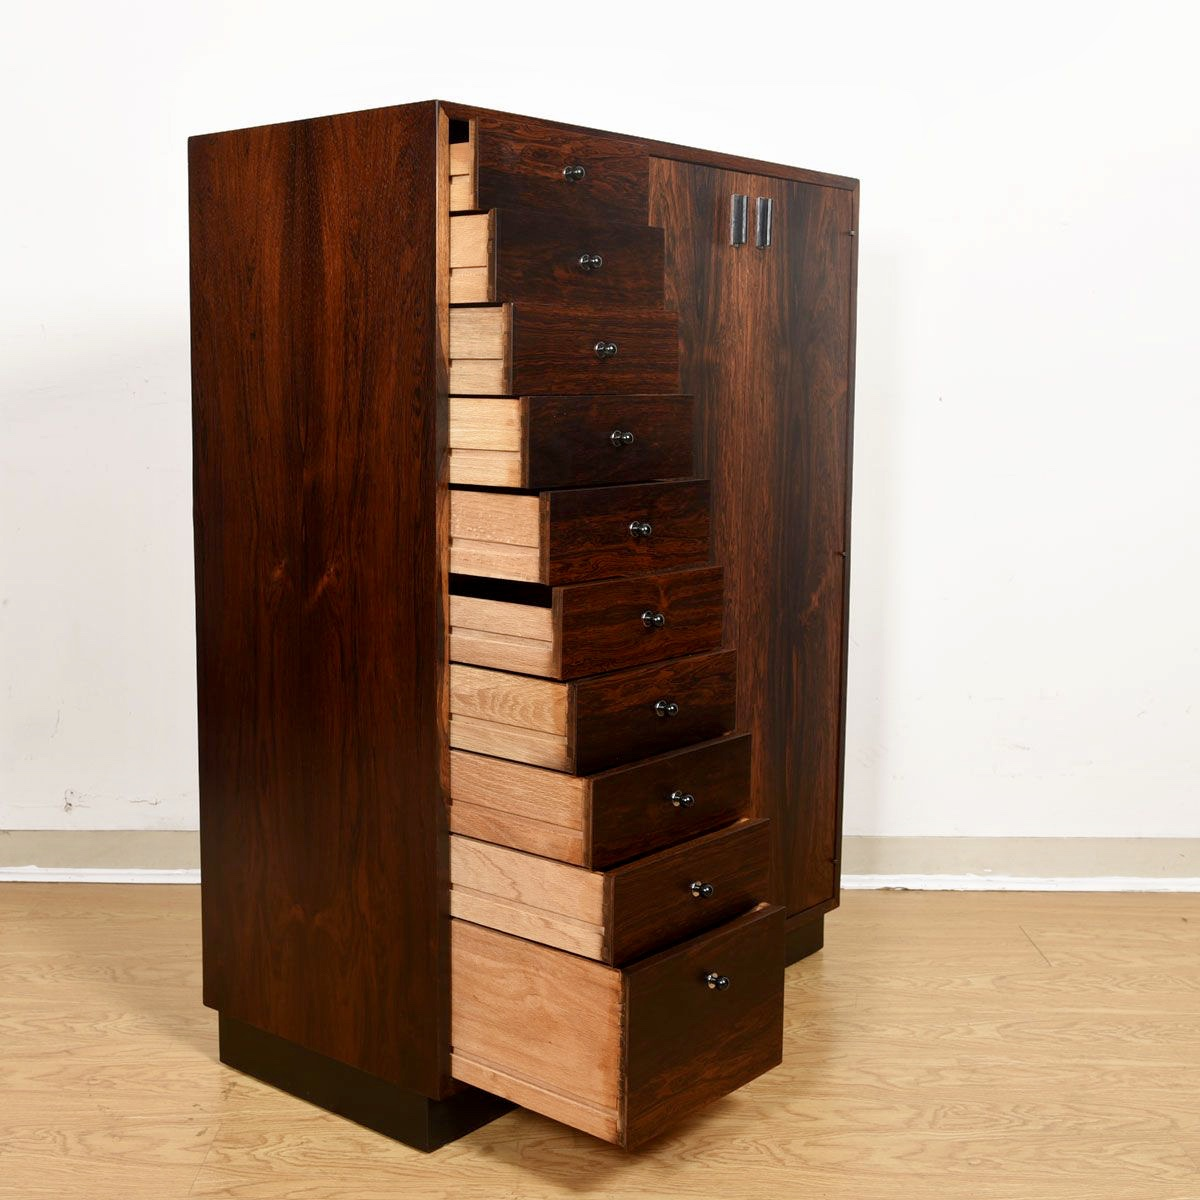 American Modernist Rosewood Tall Dresser / Gent's Chest by Probber